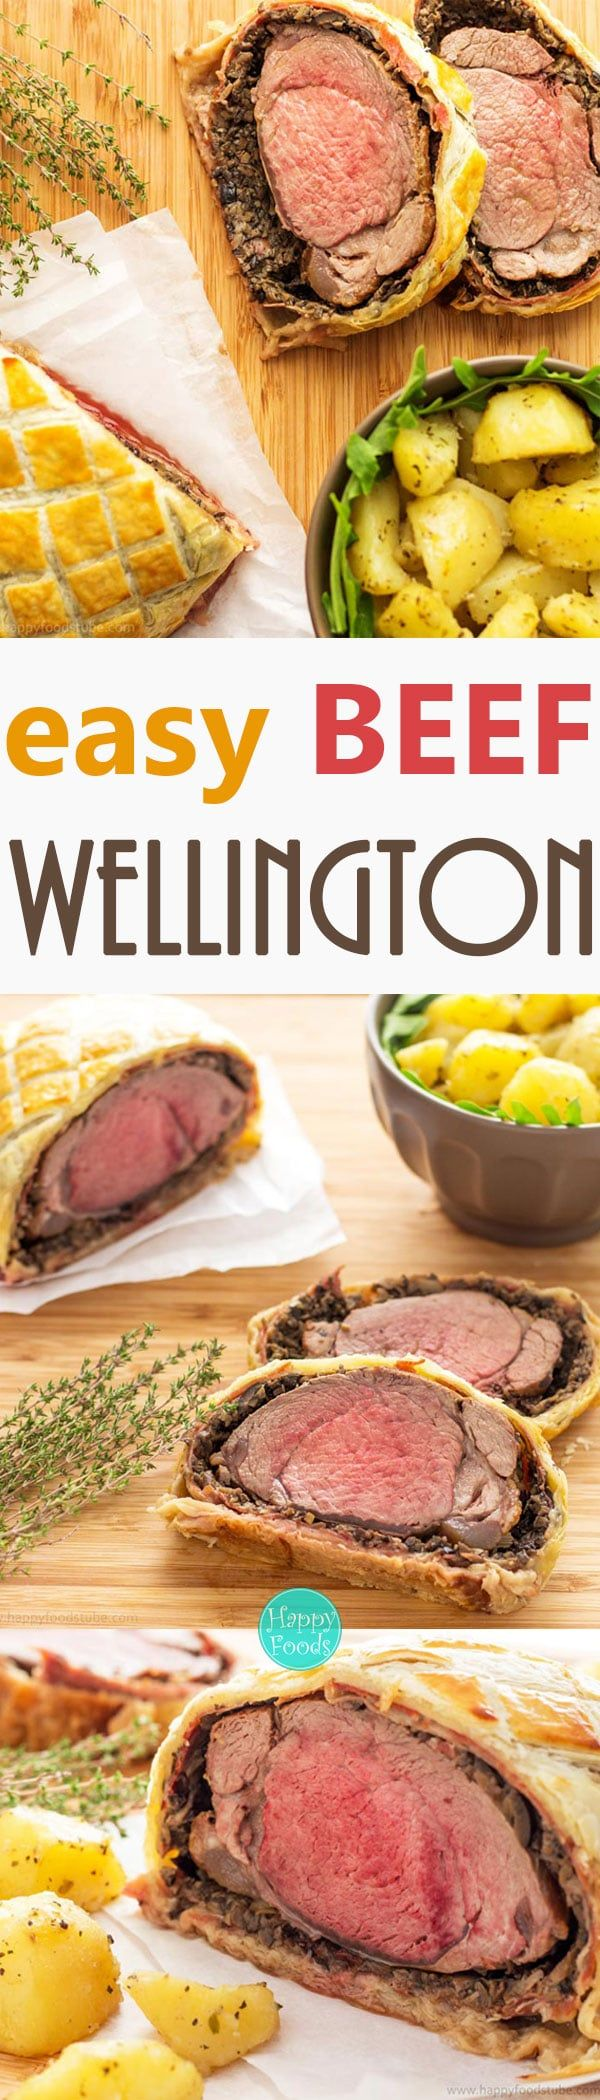 Easy Beef Wellington recipe what everyone can cook at home. If you are looking for a fancy dinner idea, look no further! via @happyfoodstube